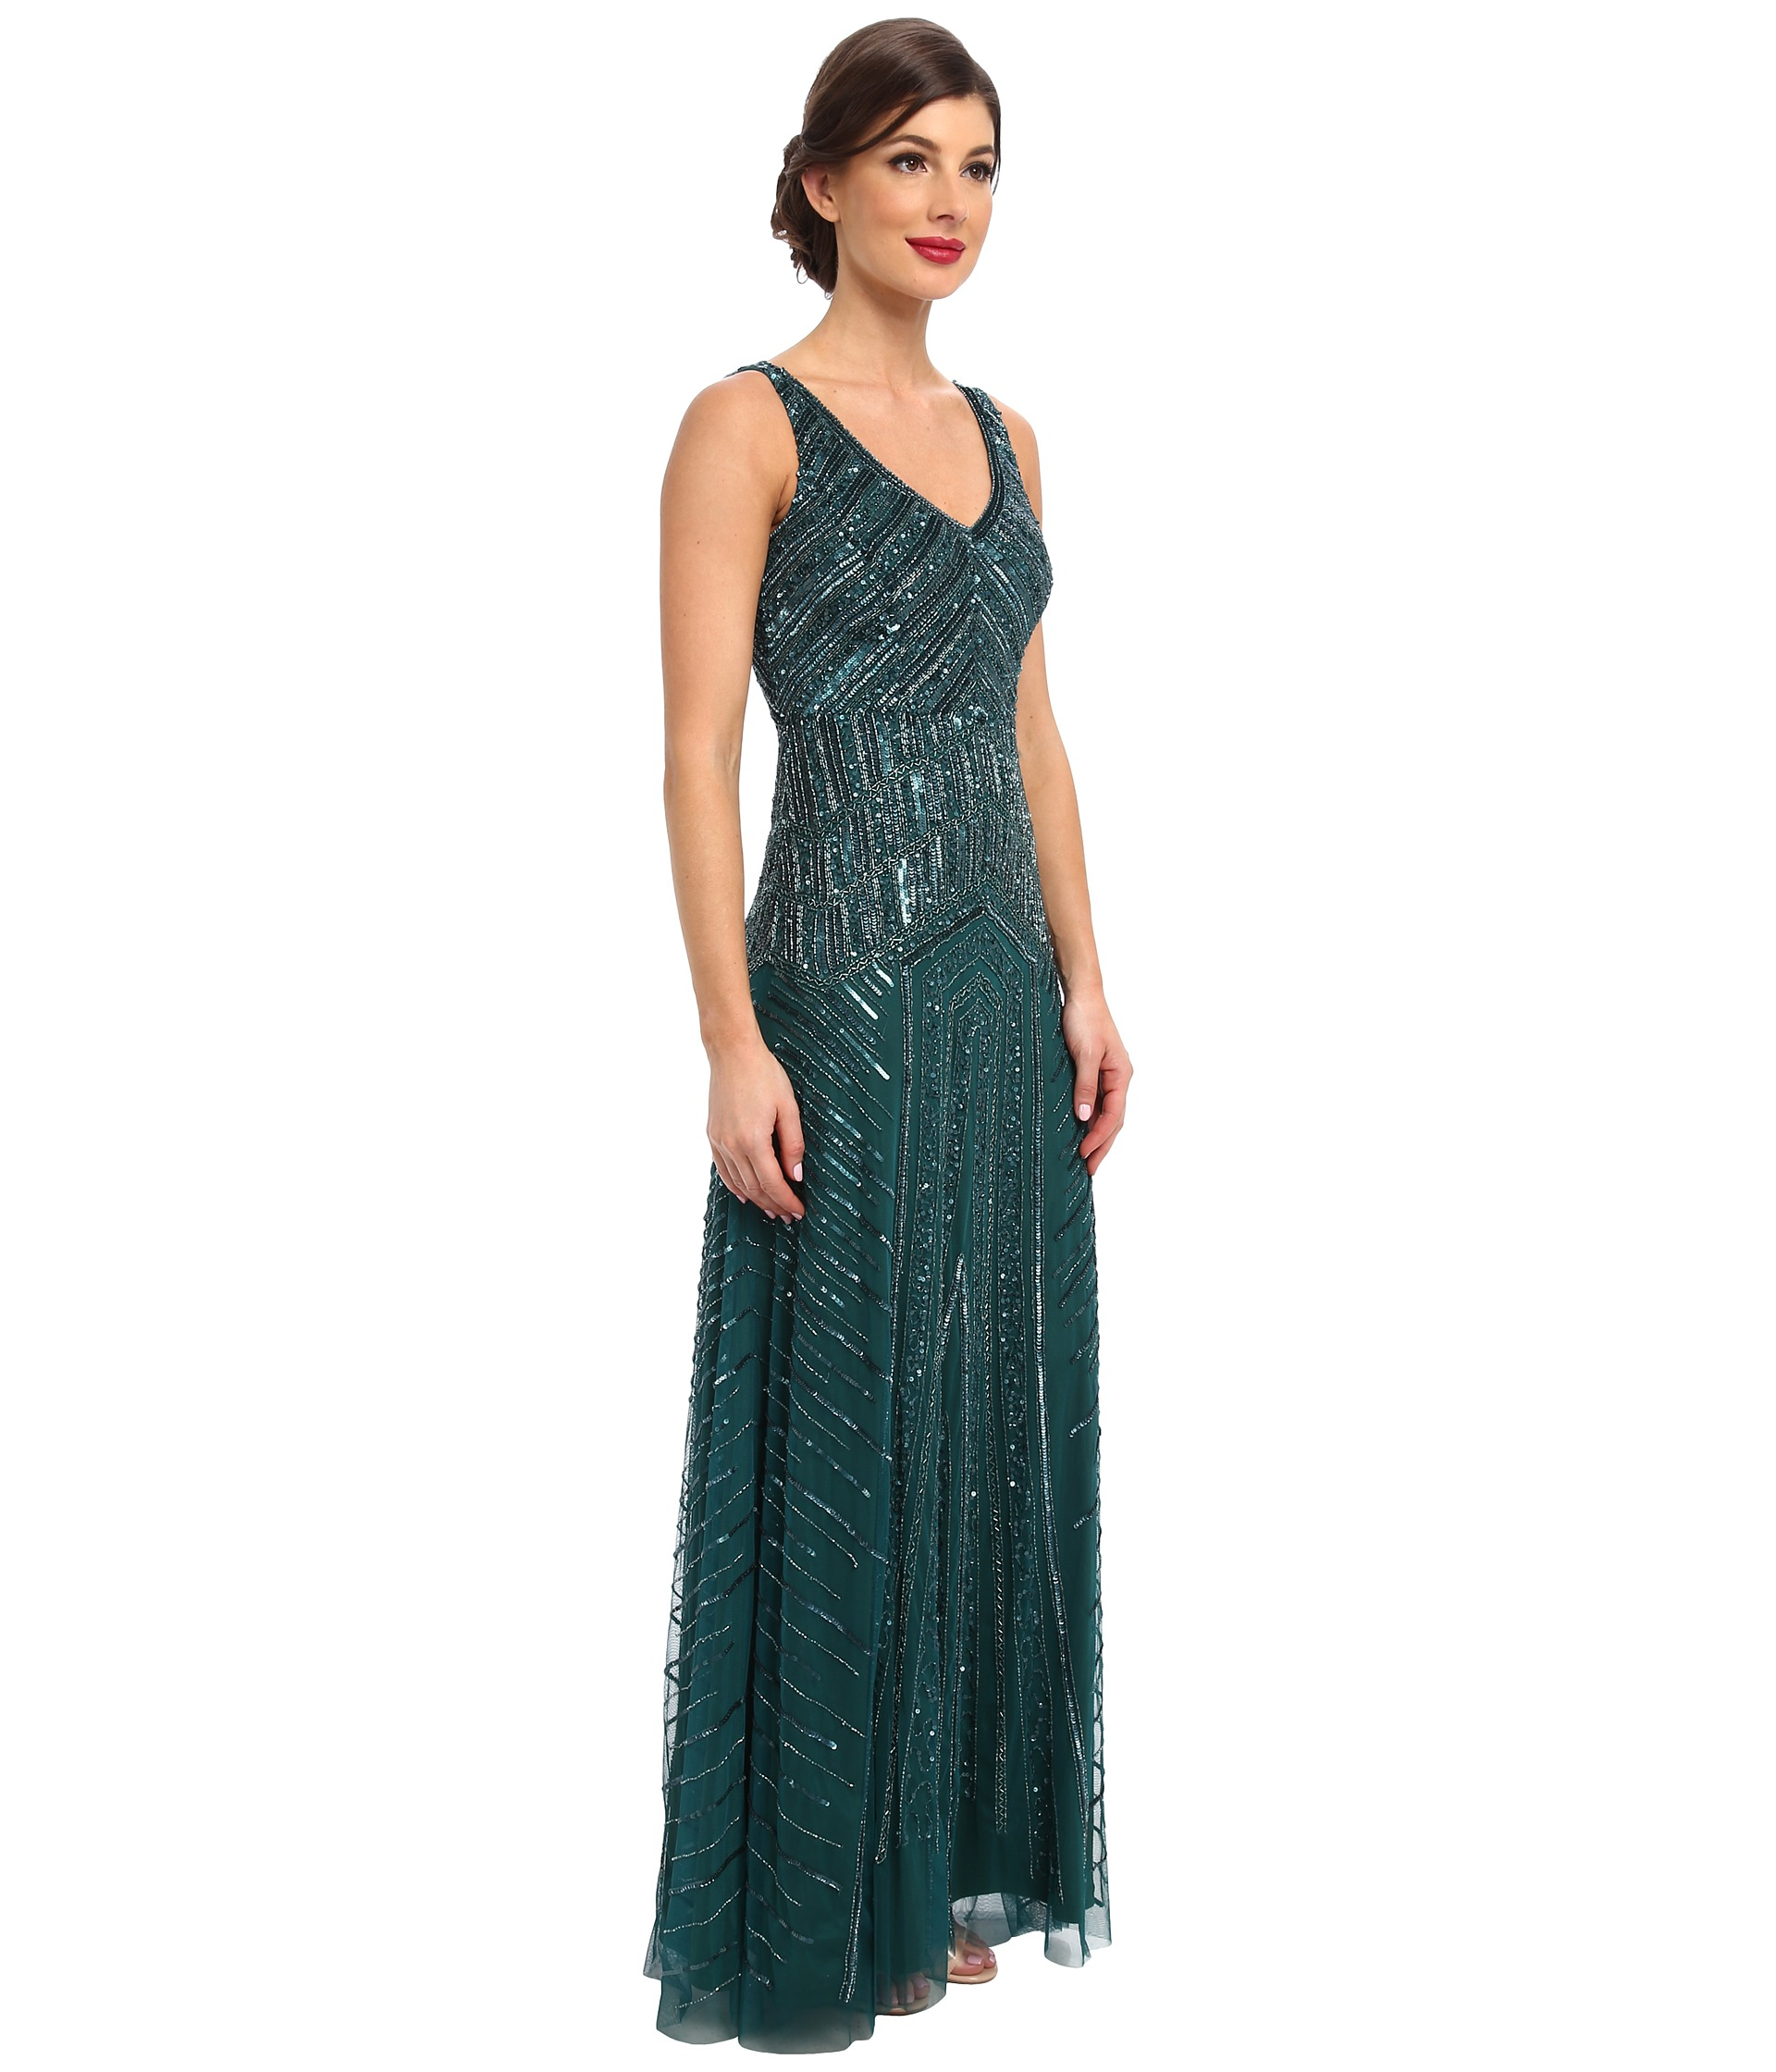 0a69a55c840 Adrianna Papell Long Beaded Dress in Green - Lyst